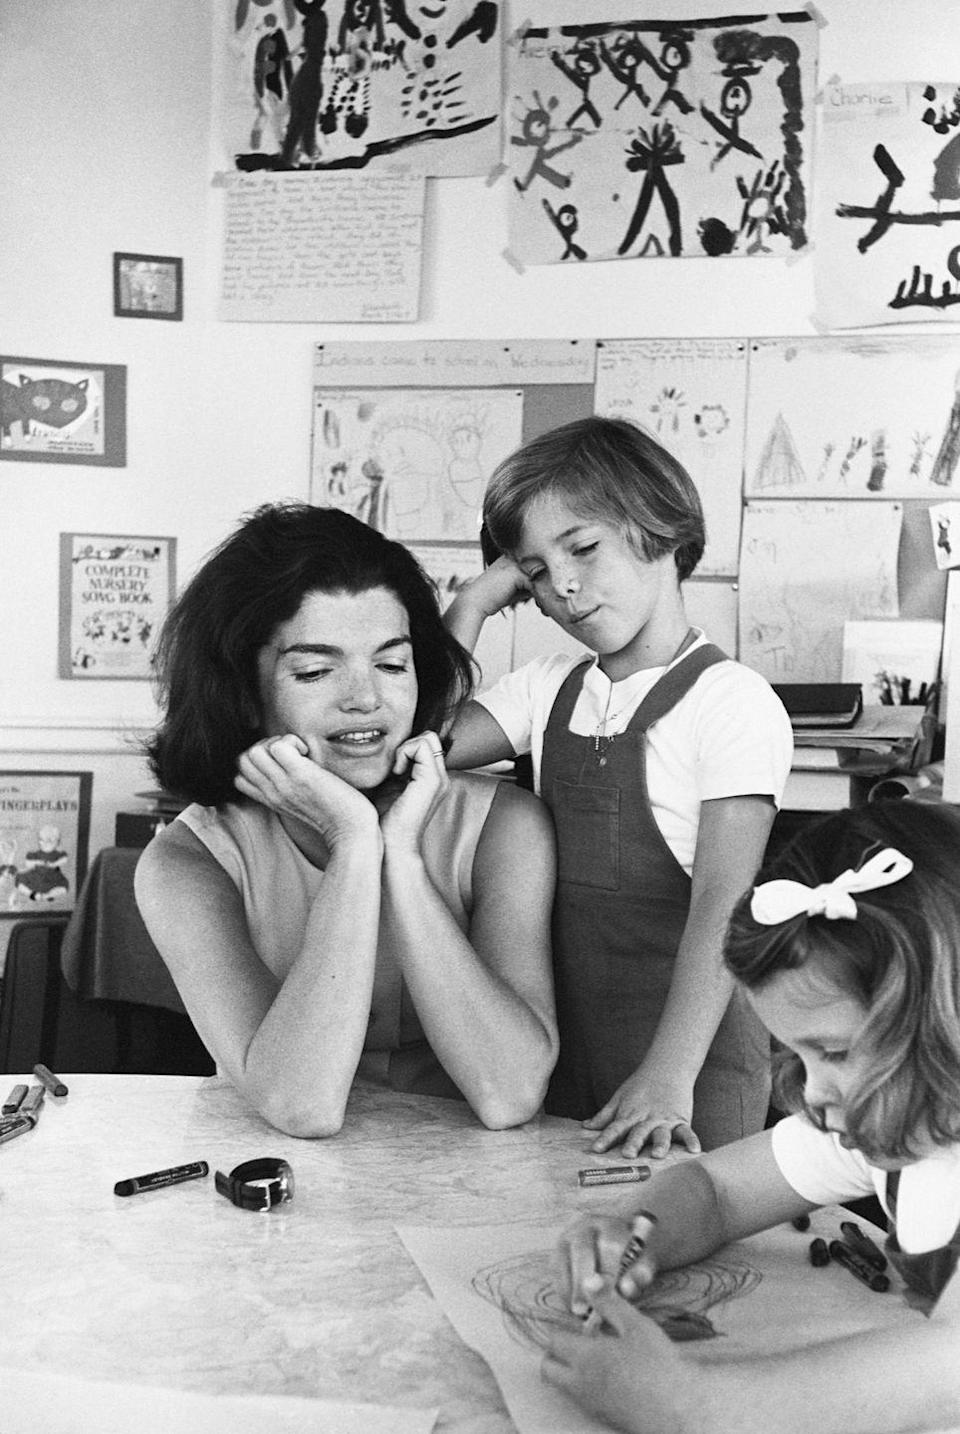 """<p>Jackie was extremely invested in keeping her children away from the press and, given that it had become impossible for her eldest to travel in the city without a trail of photographers, Jackie decided to open a <a href=""""http://www.history.com/news/10-things-you-may-not-know-about-jacqueline-kennedy-onassis"""" rel=""""nofollow noopener"""" target=""""_blank"""" data-ylk=""""slk:school"""" class=""""link rapid-noclick-resp"""">school</a> on the third floor of the White House. Jackie invited other kids to join, and eventually her third floor was transformed into a legitimate kindergarten classroom with qualified, professional teachers, ten students, and even a couple of animals. </p>"""